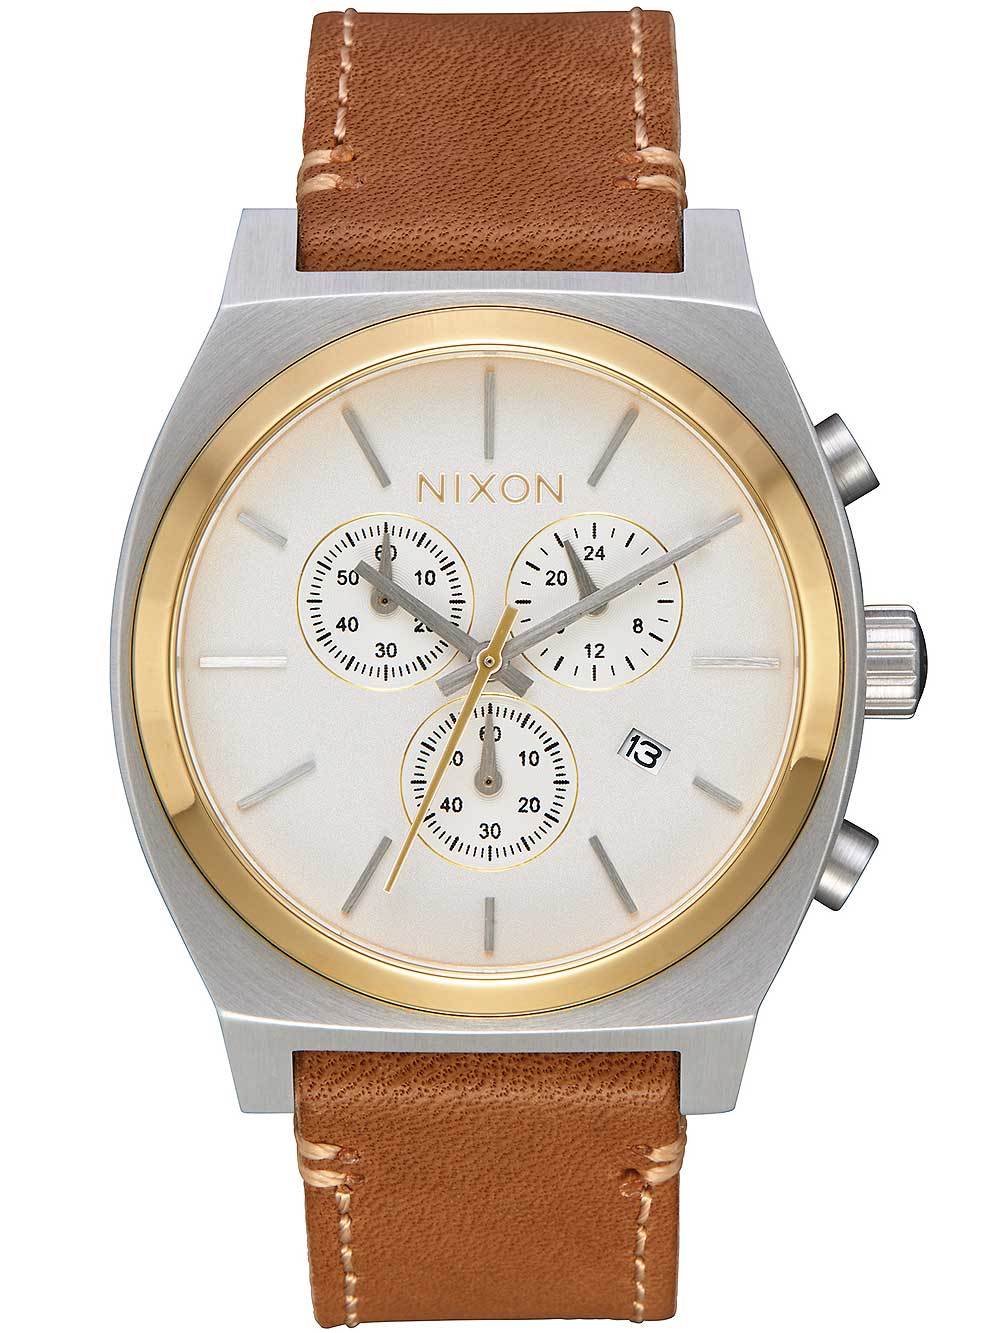 A1164-2548 Time-Teller Leather Chrono Gold Cream Tan 39mm 10ATM